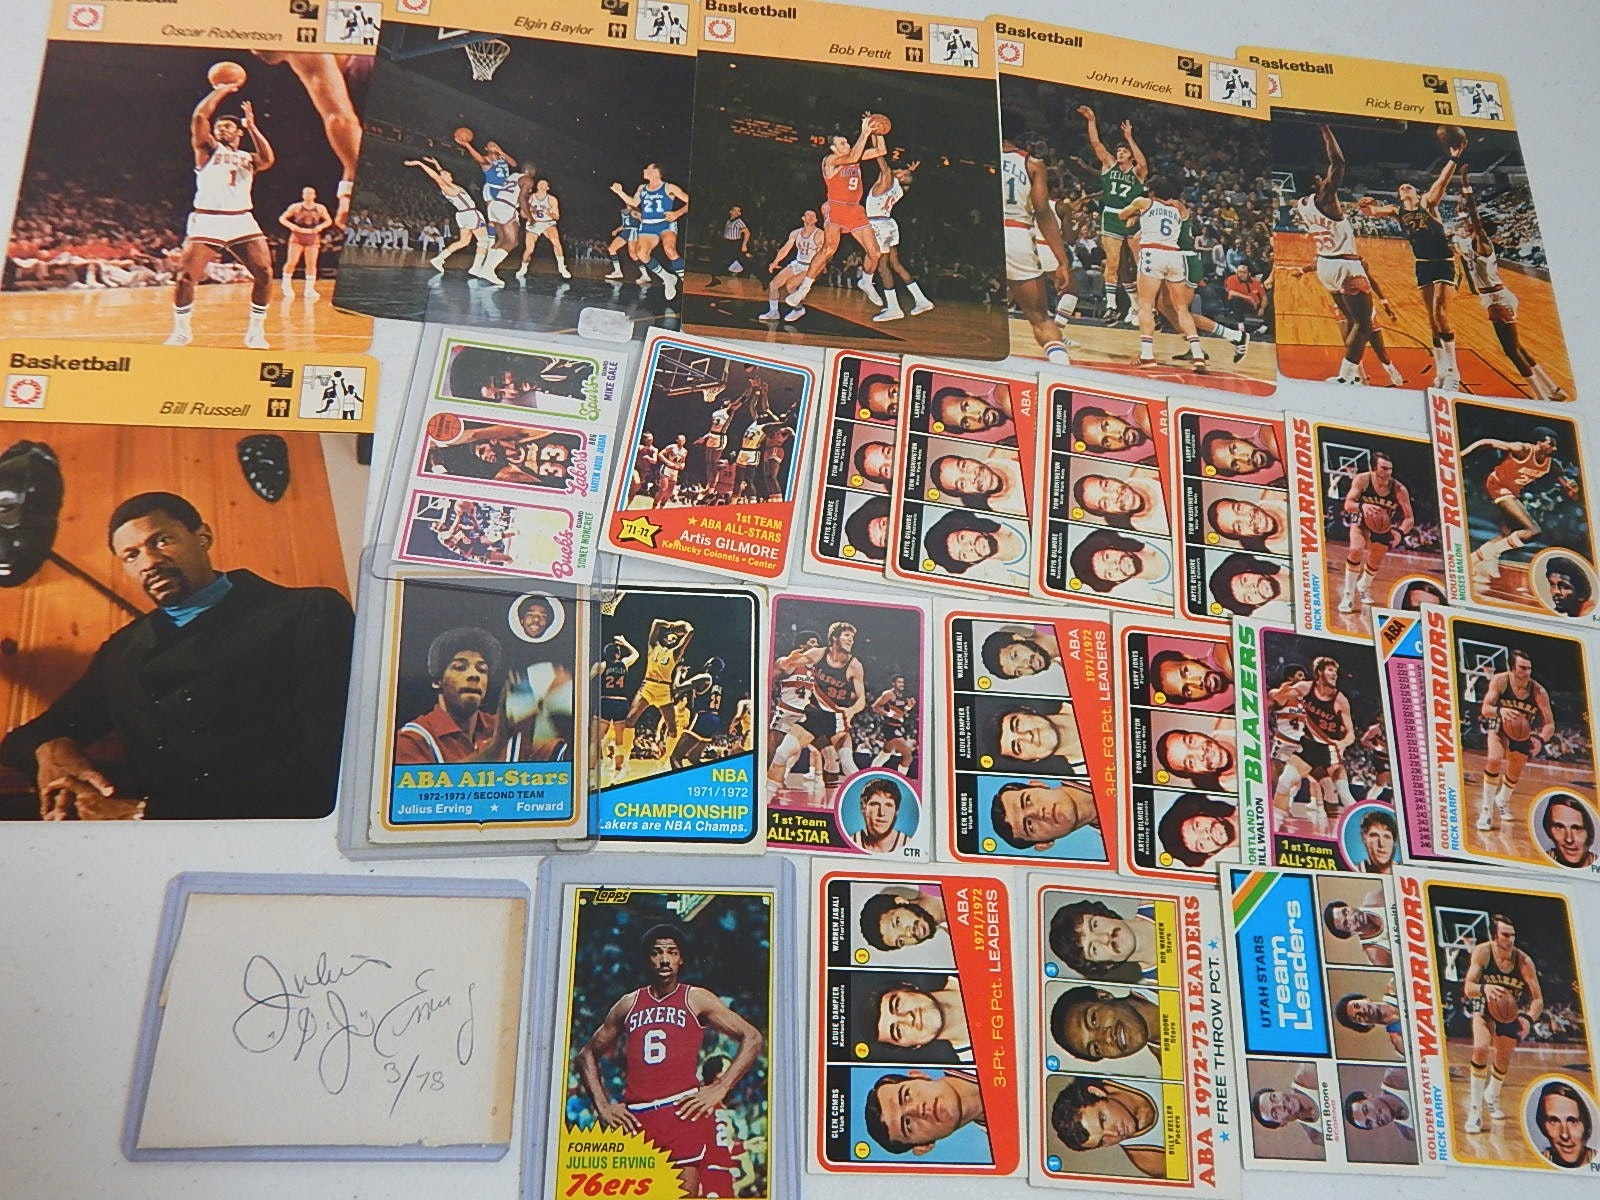 Vintage Star Basketball Card Collection with J. Erving Cut Signature